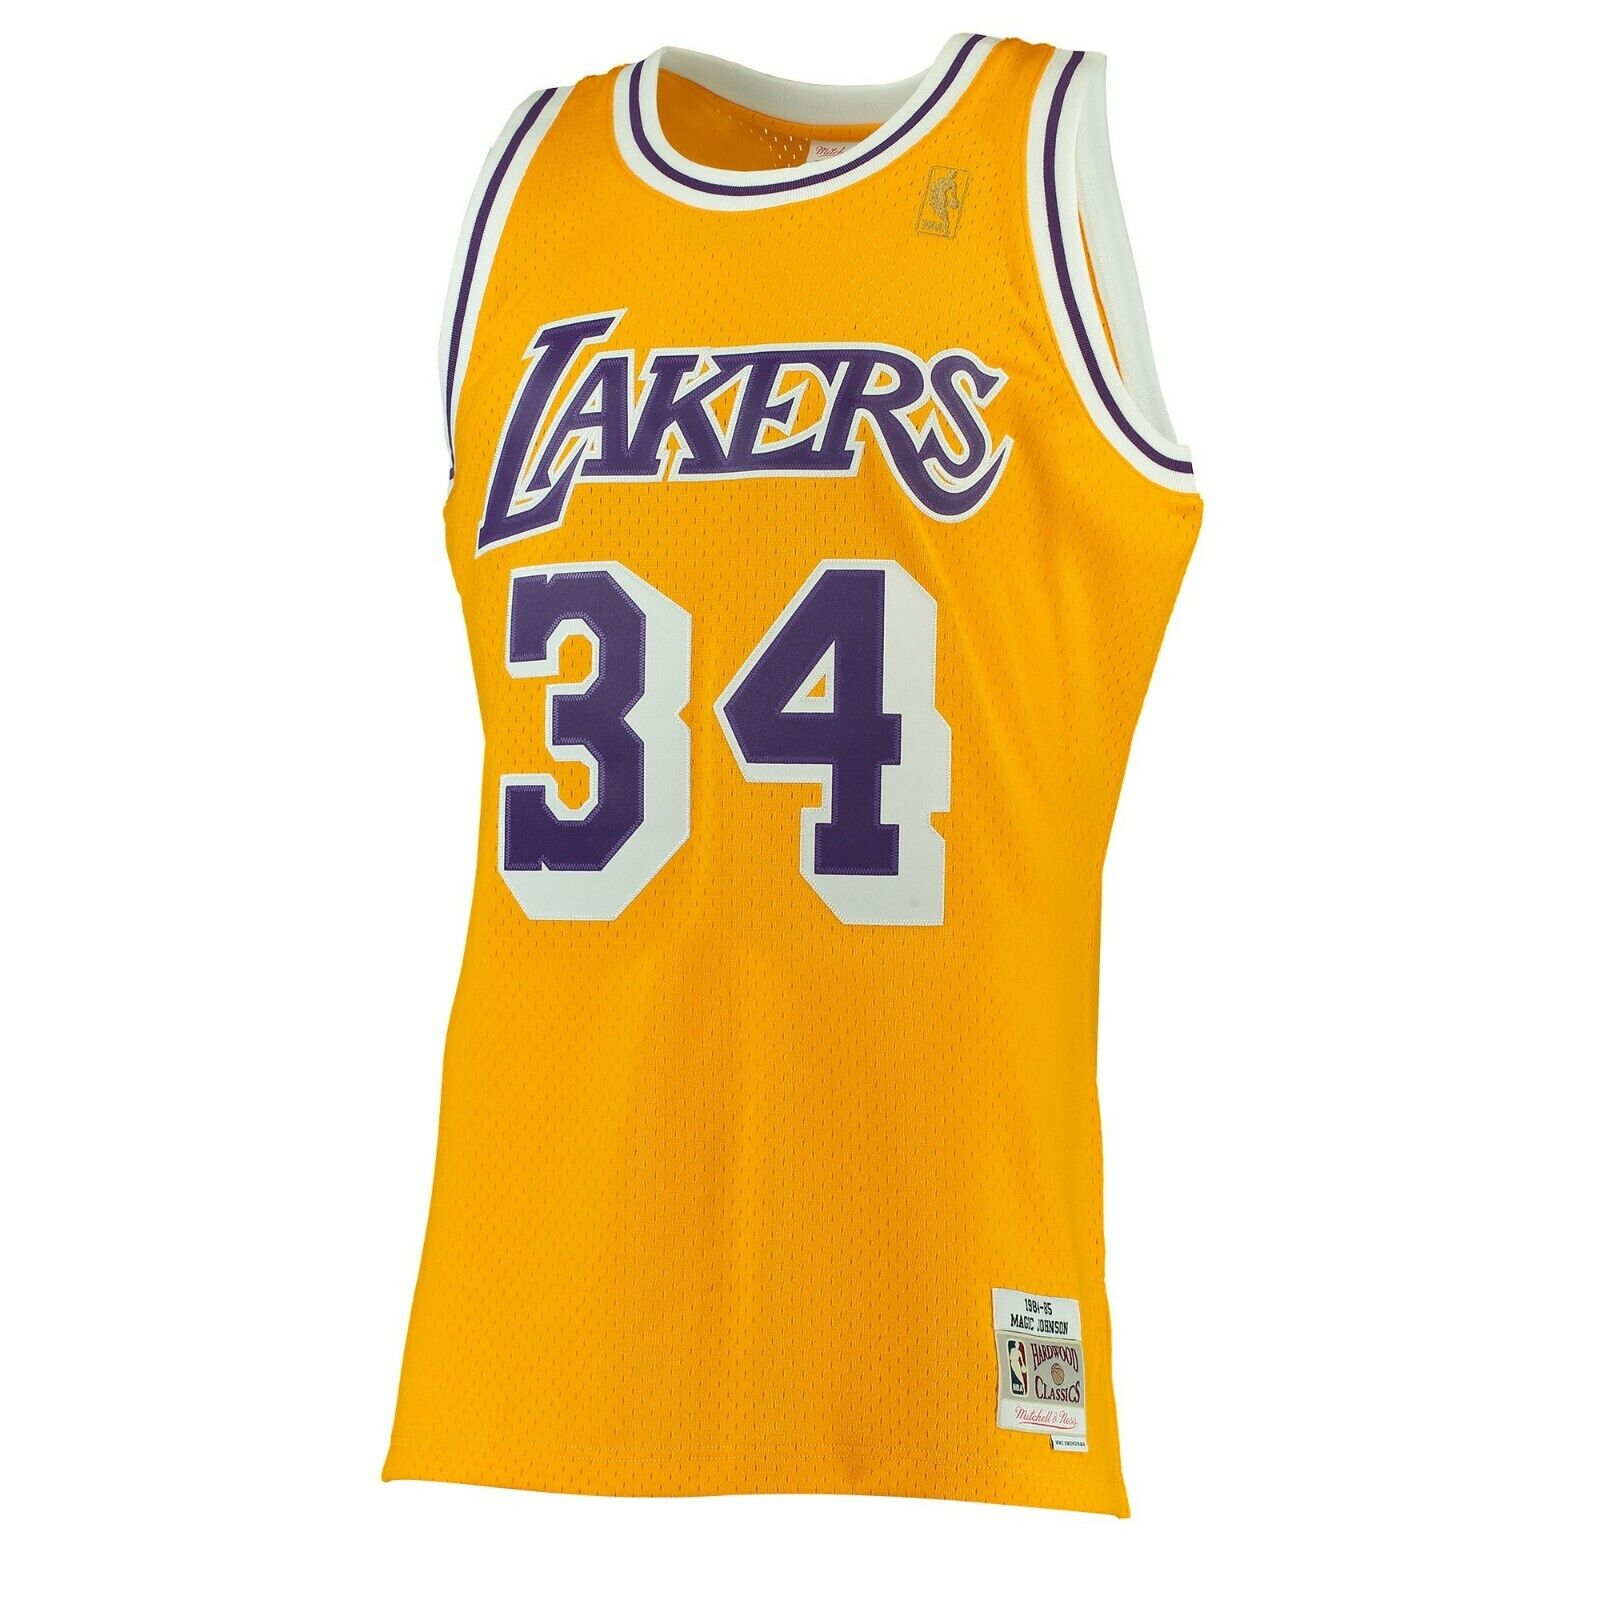 f681a32cb Details about Mitchell   Ness NBA Los Angeles Lakers  34 O neal Yellow  Swingman Jersey